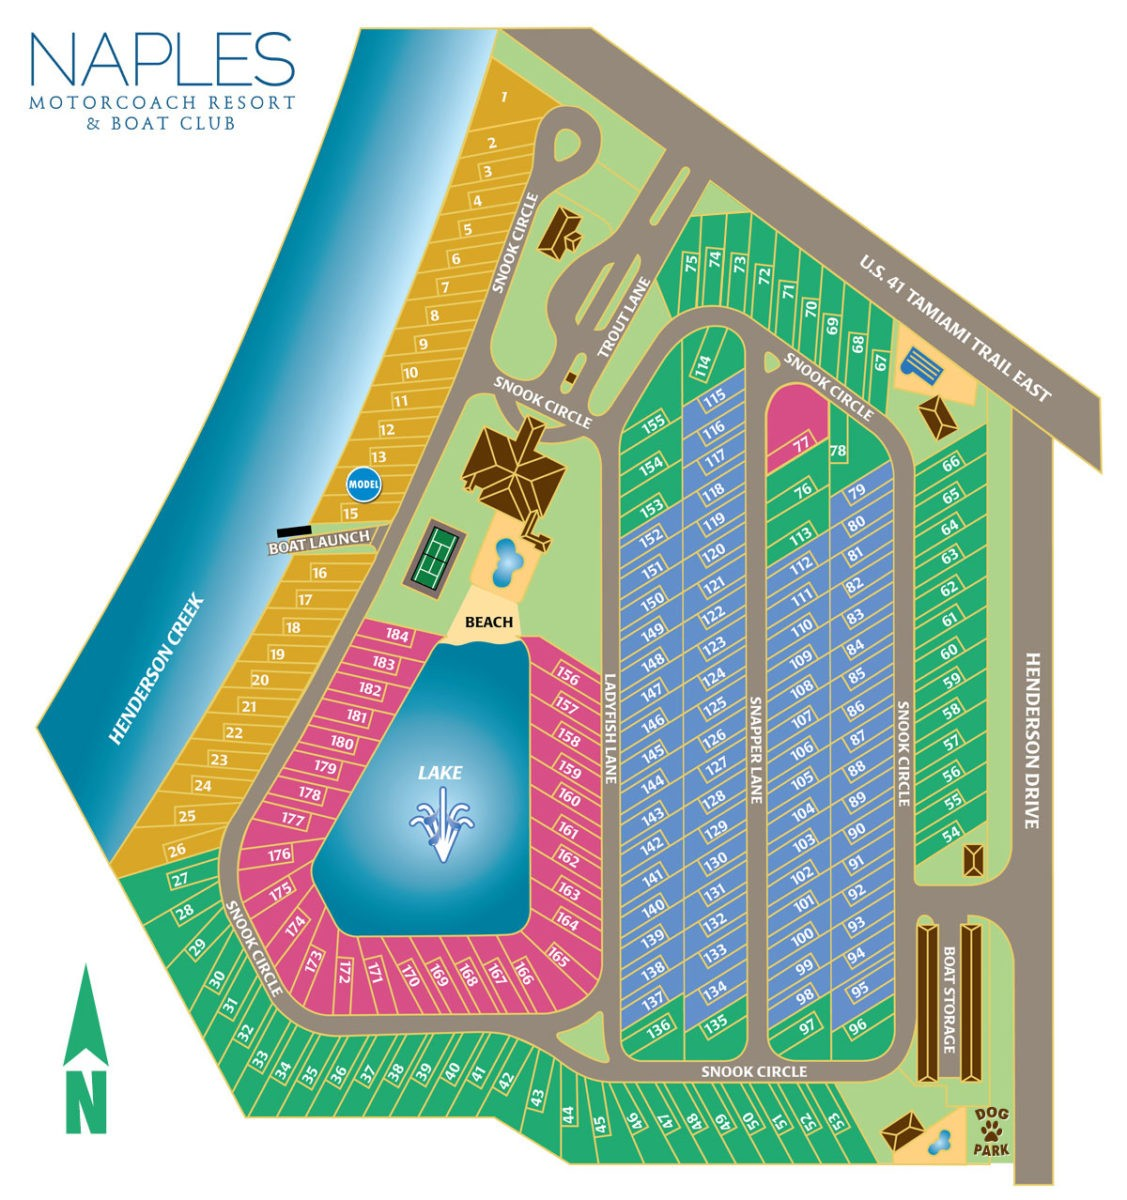 Naples Motorcoach Resort Map